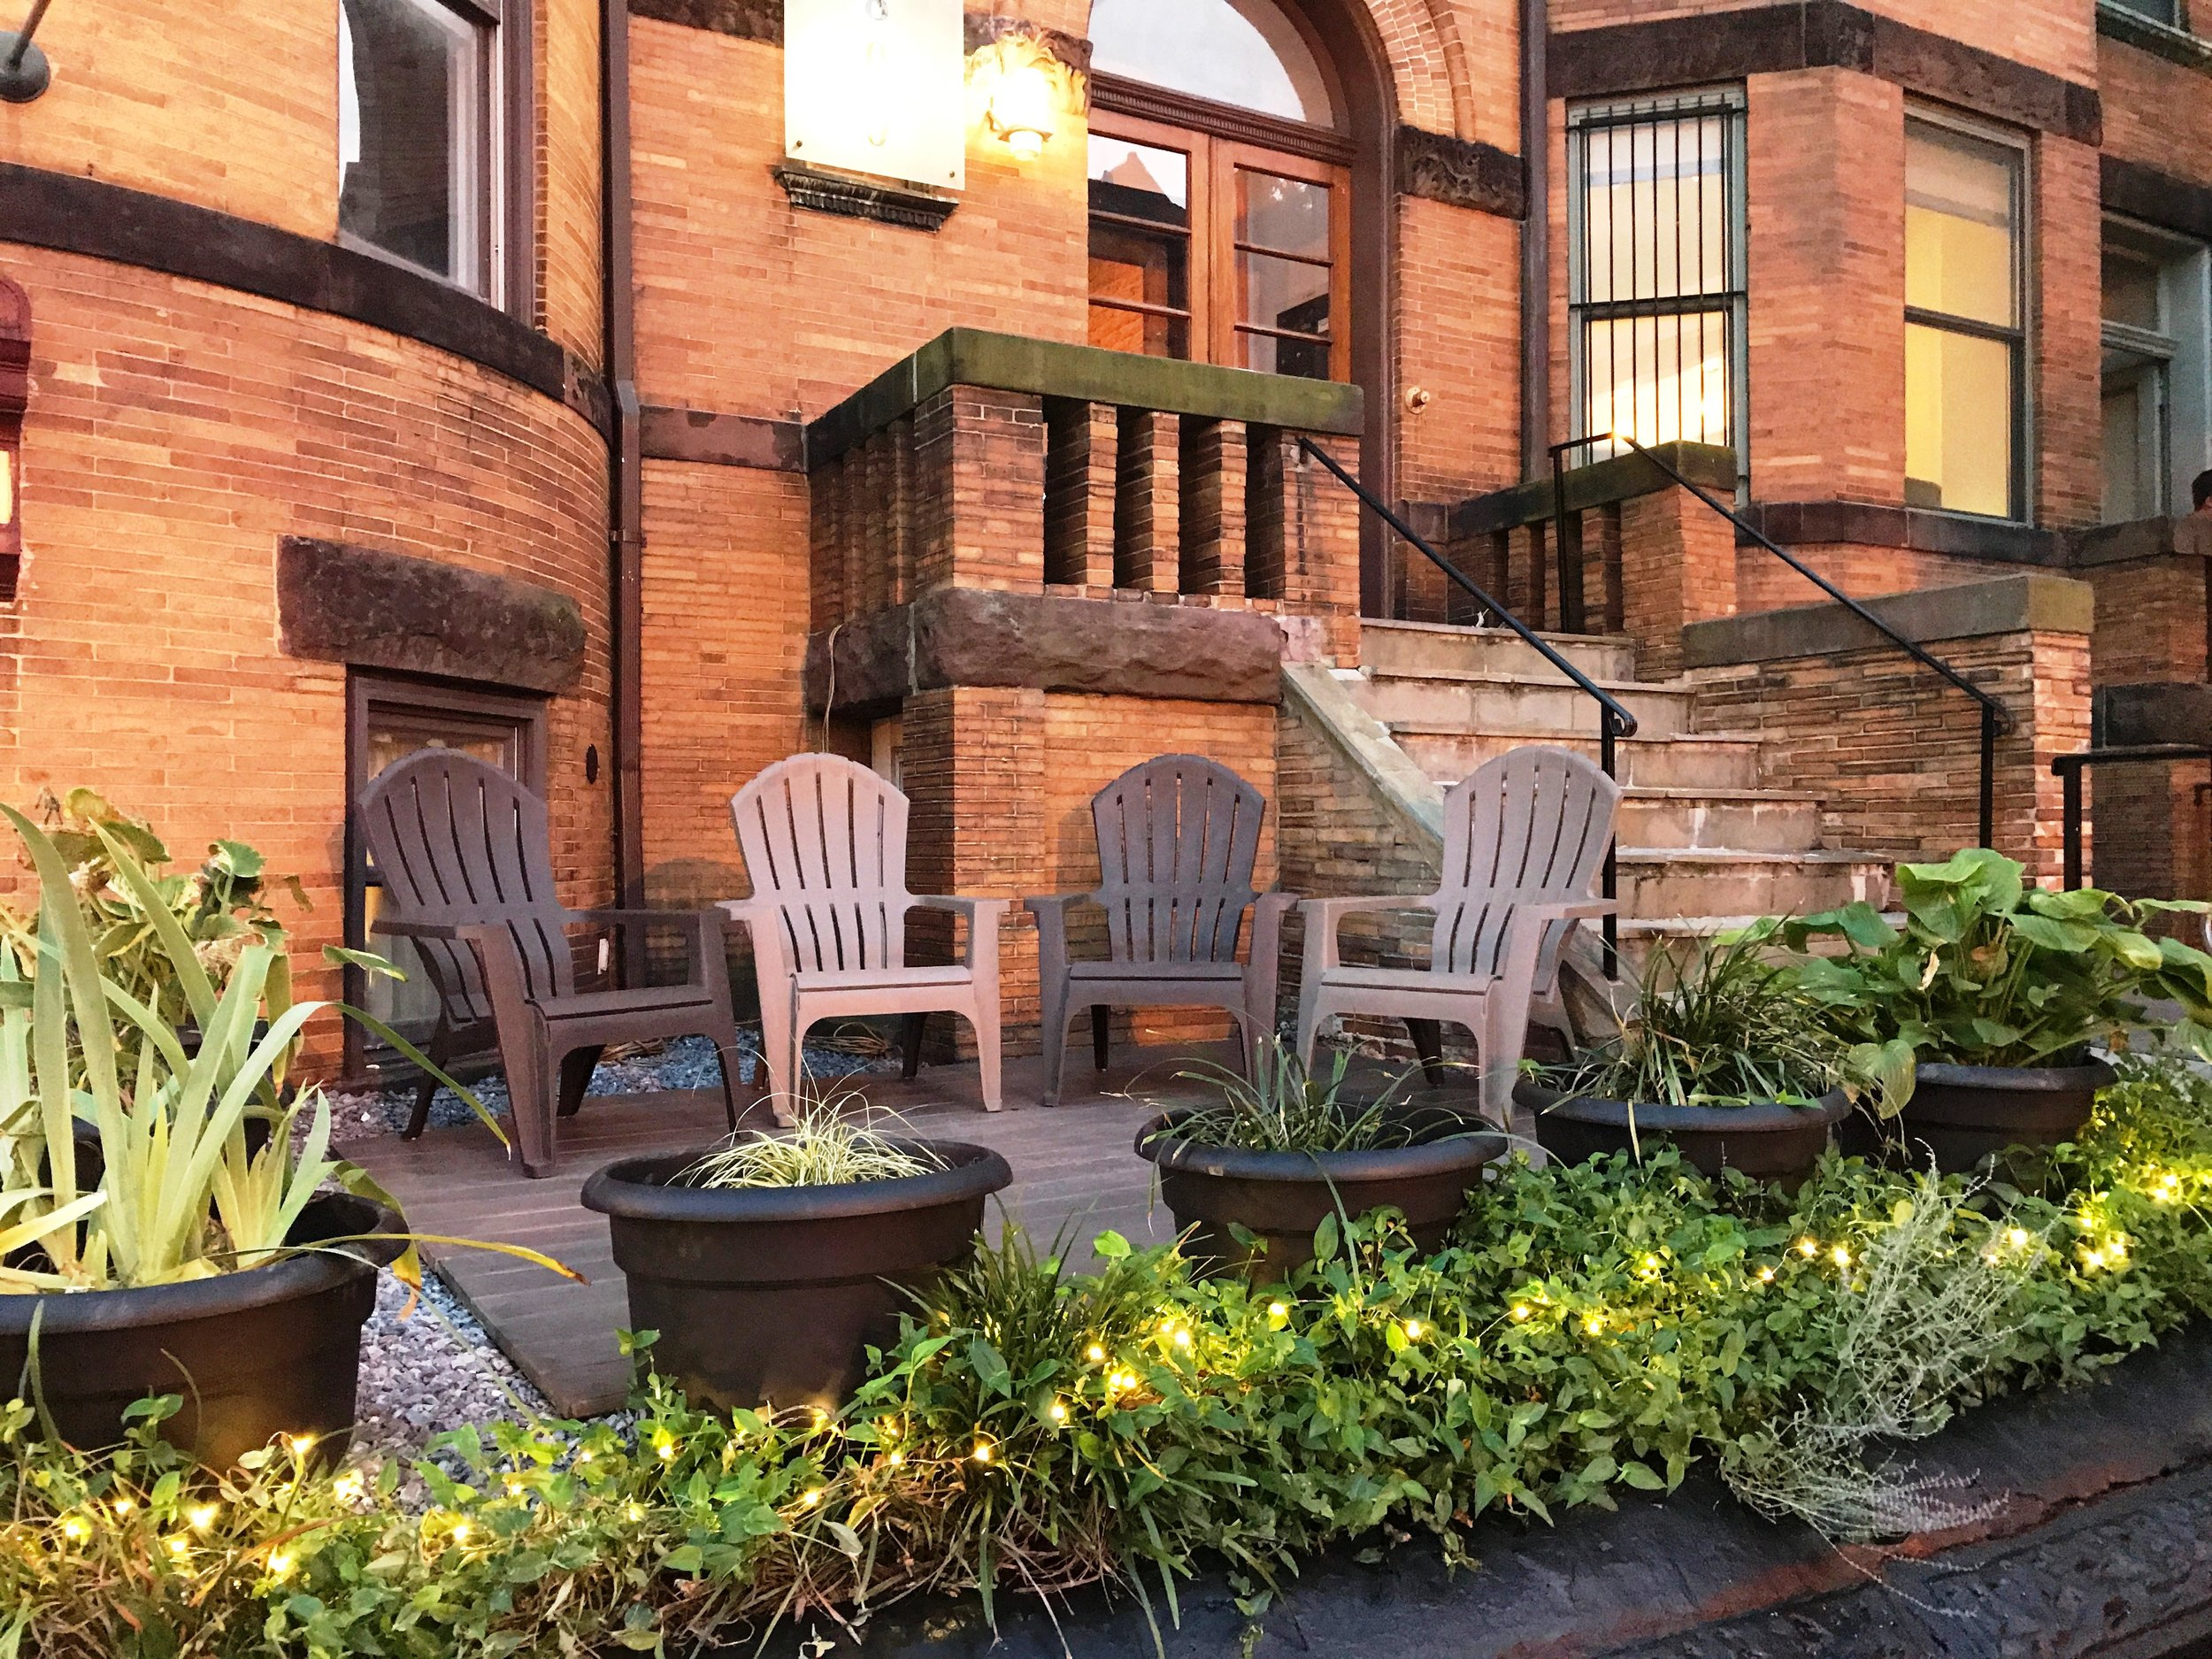 Terrace area with chairs for guest seating outside in front of the building.